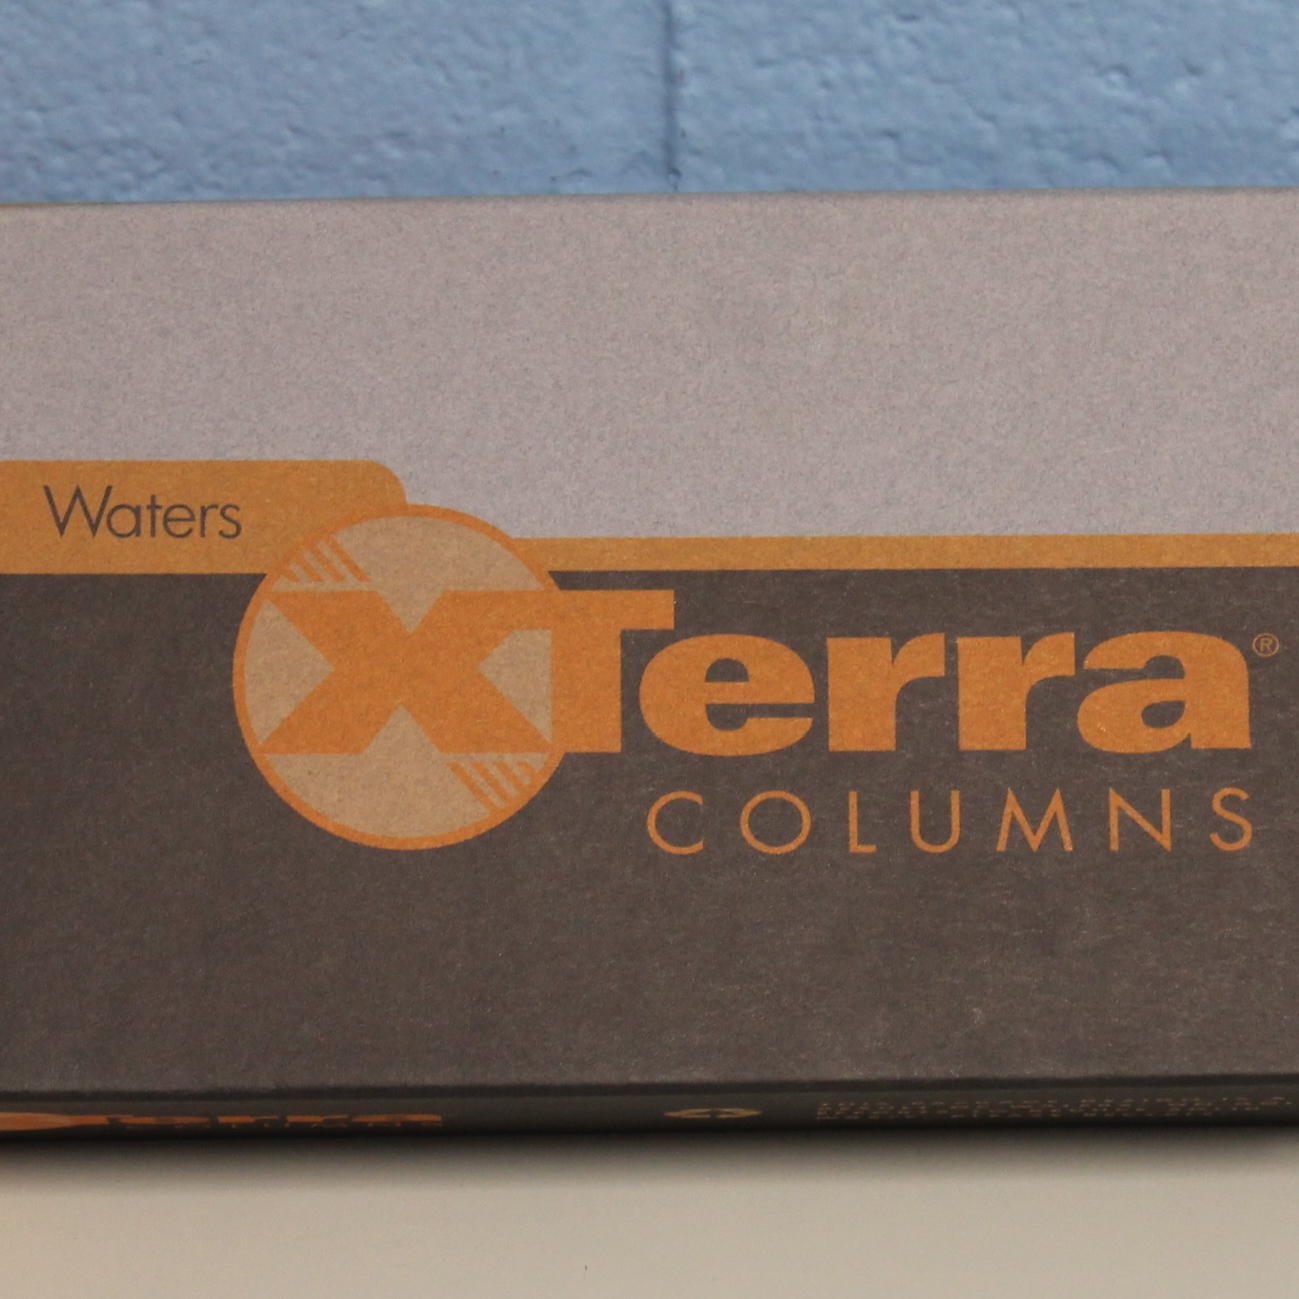 Waters XTerra Shield RP8 Column 125 3.5 m, 4.6 mm x 30 mm Image